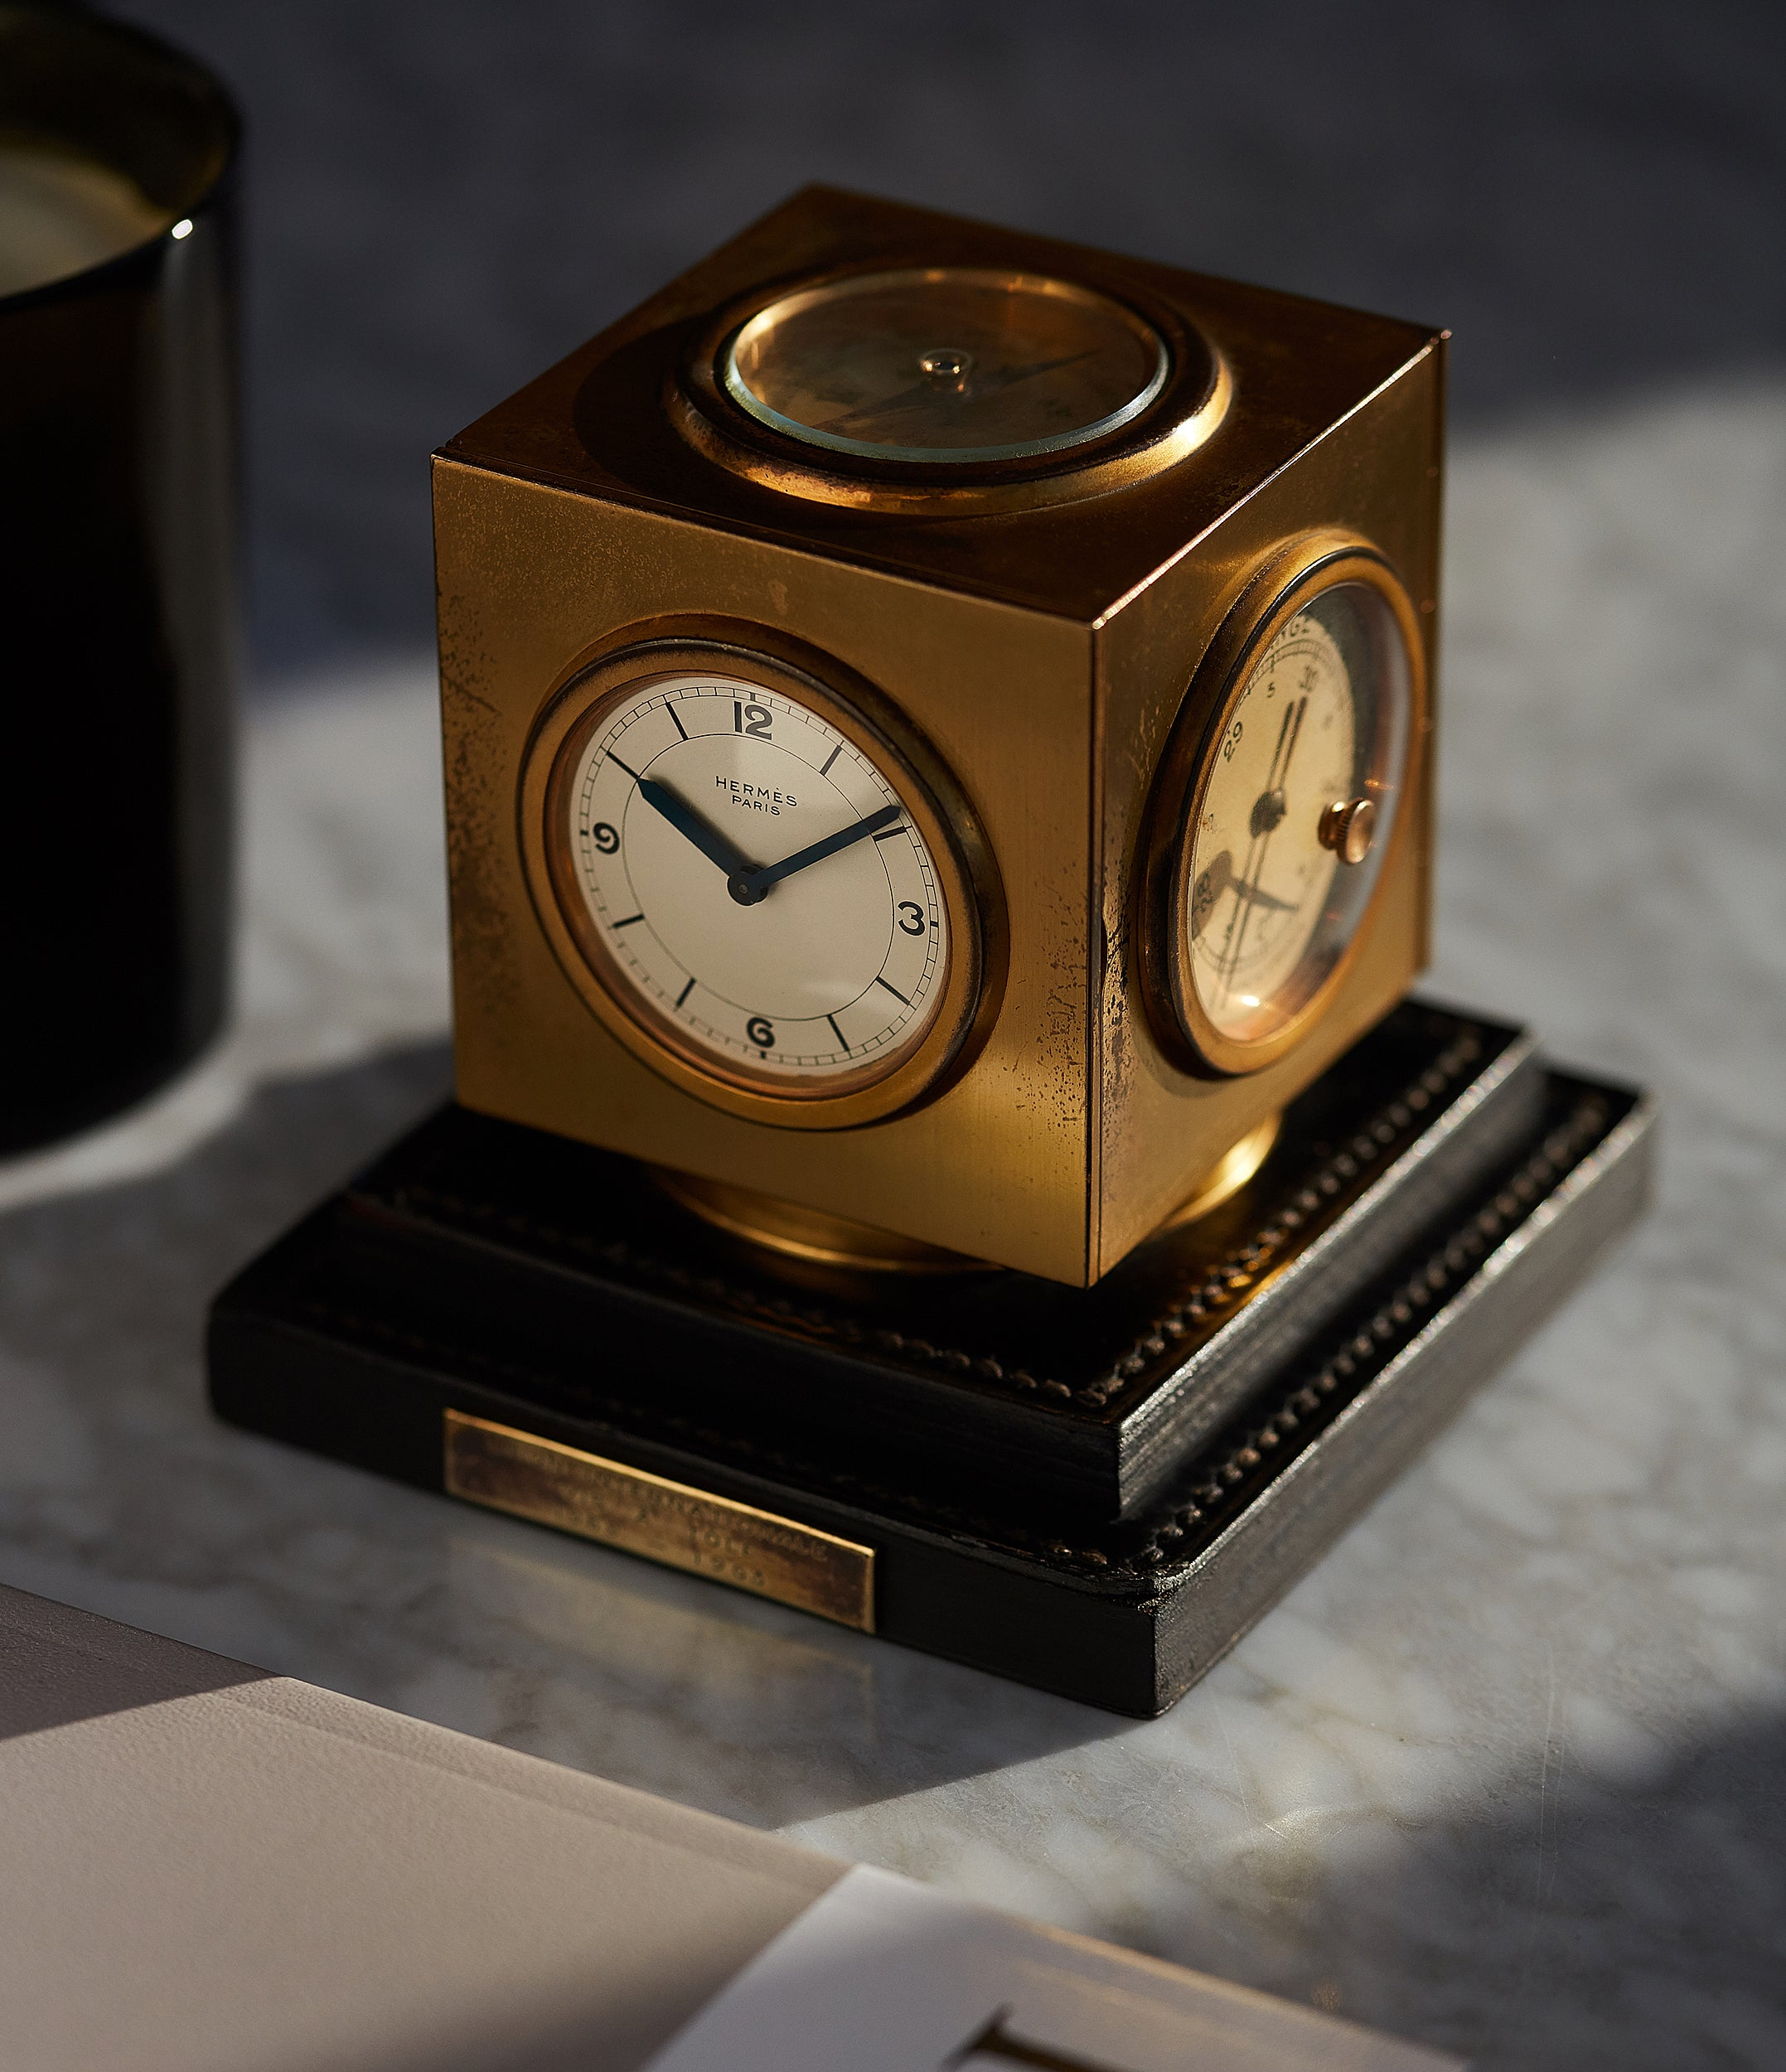 cool vintage object Hermes Paris Compendium 8-day Art Deco brass calendar desk clock for sale online at A Collected Man for collectors of rare objects